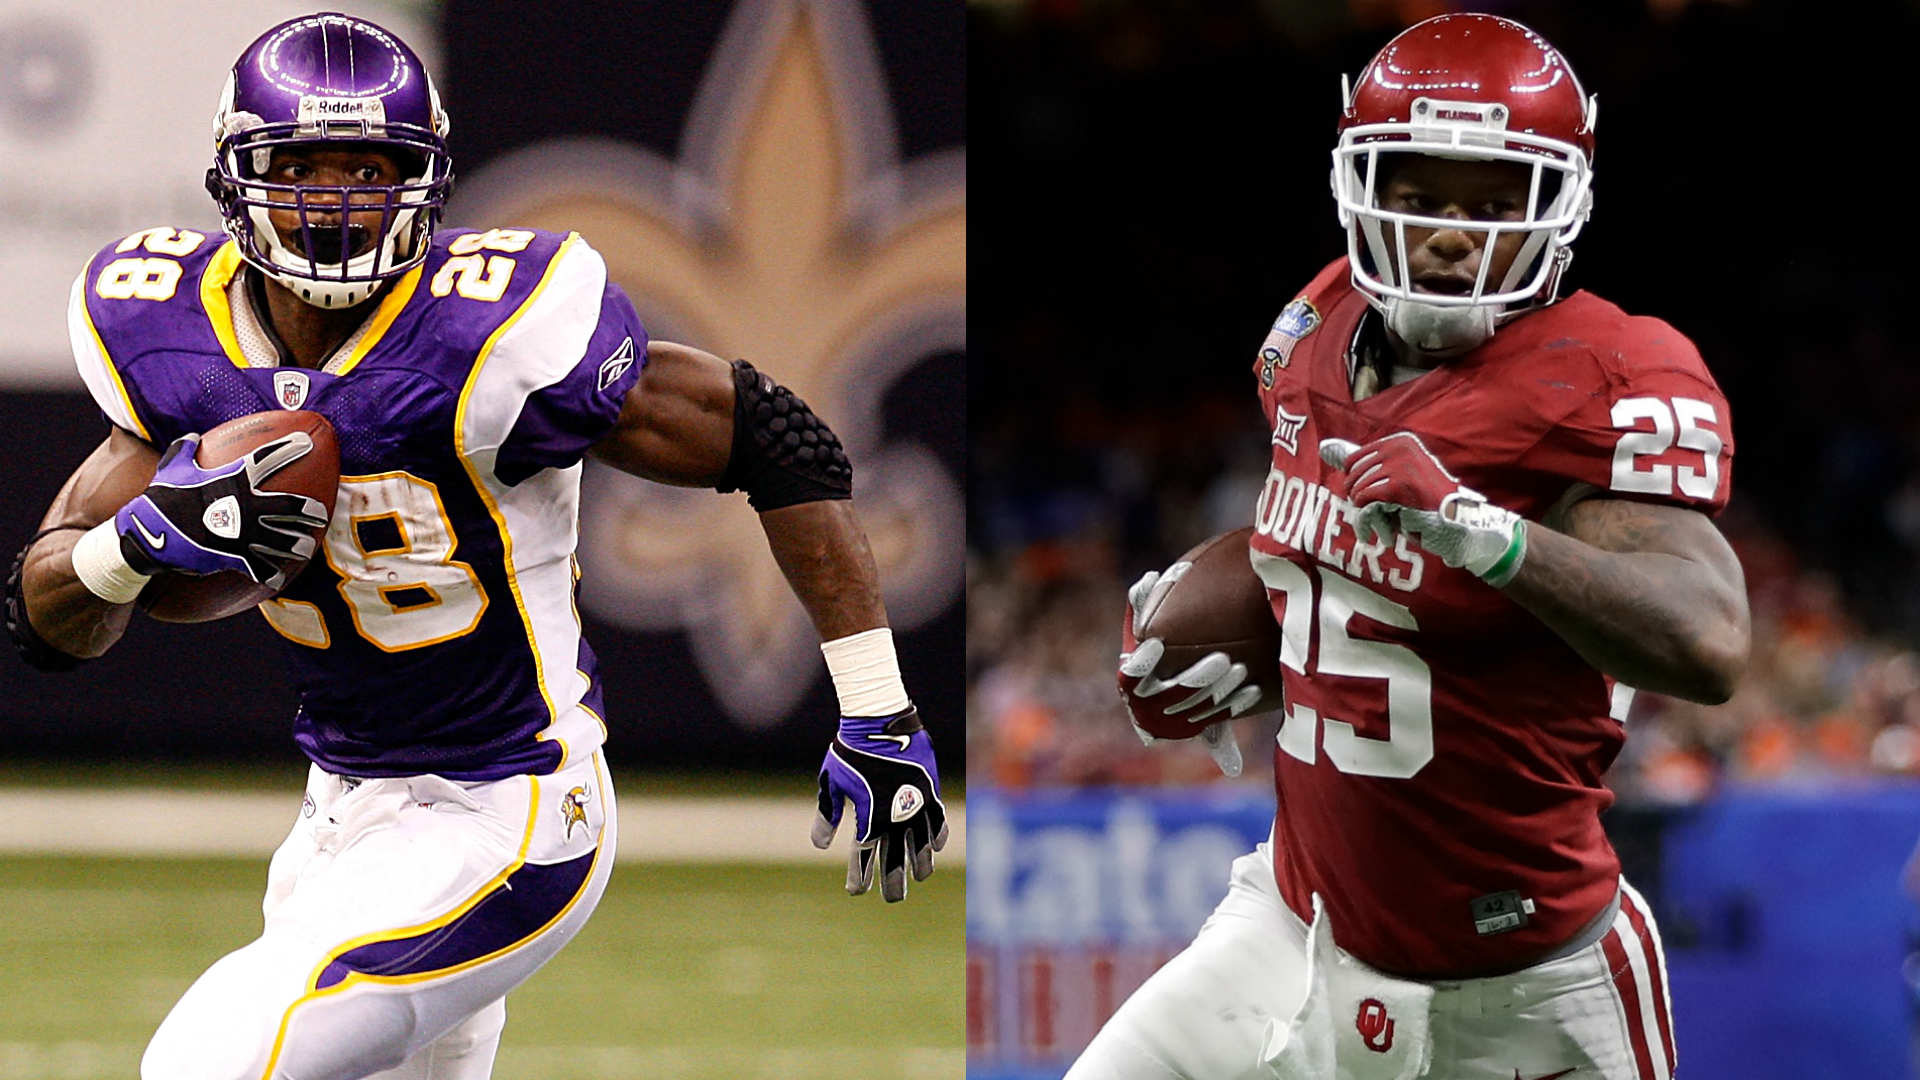 Bengals rookie Joe Mixon to work out with Saints RB Adrian Peterson